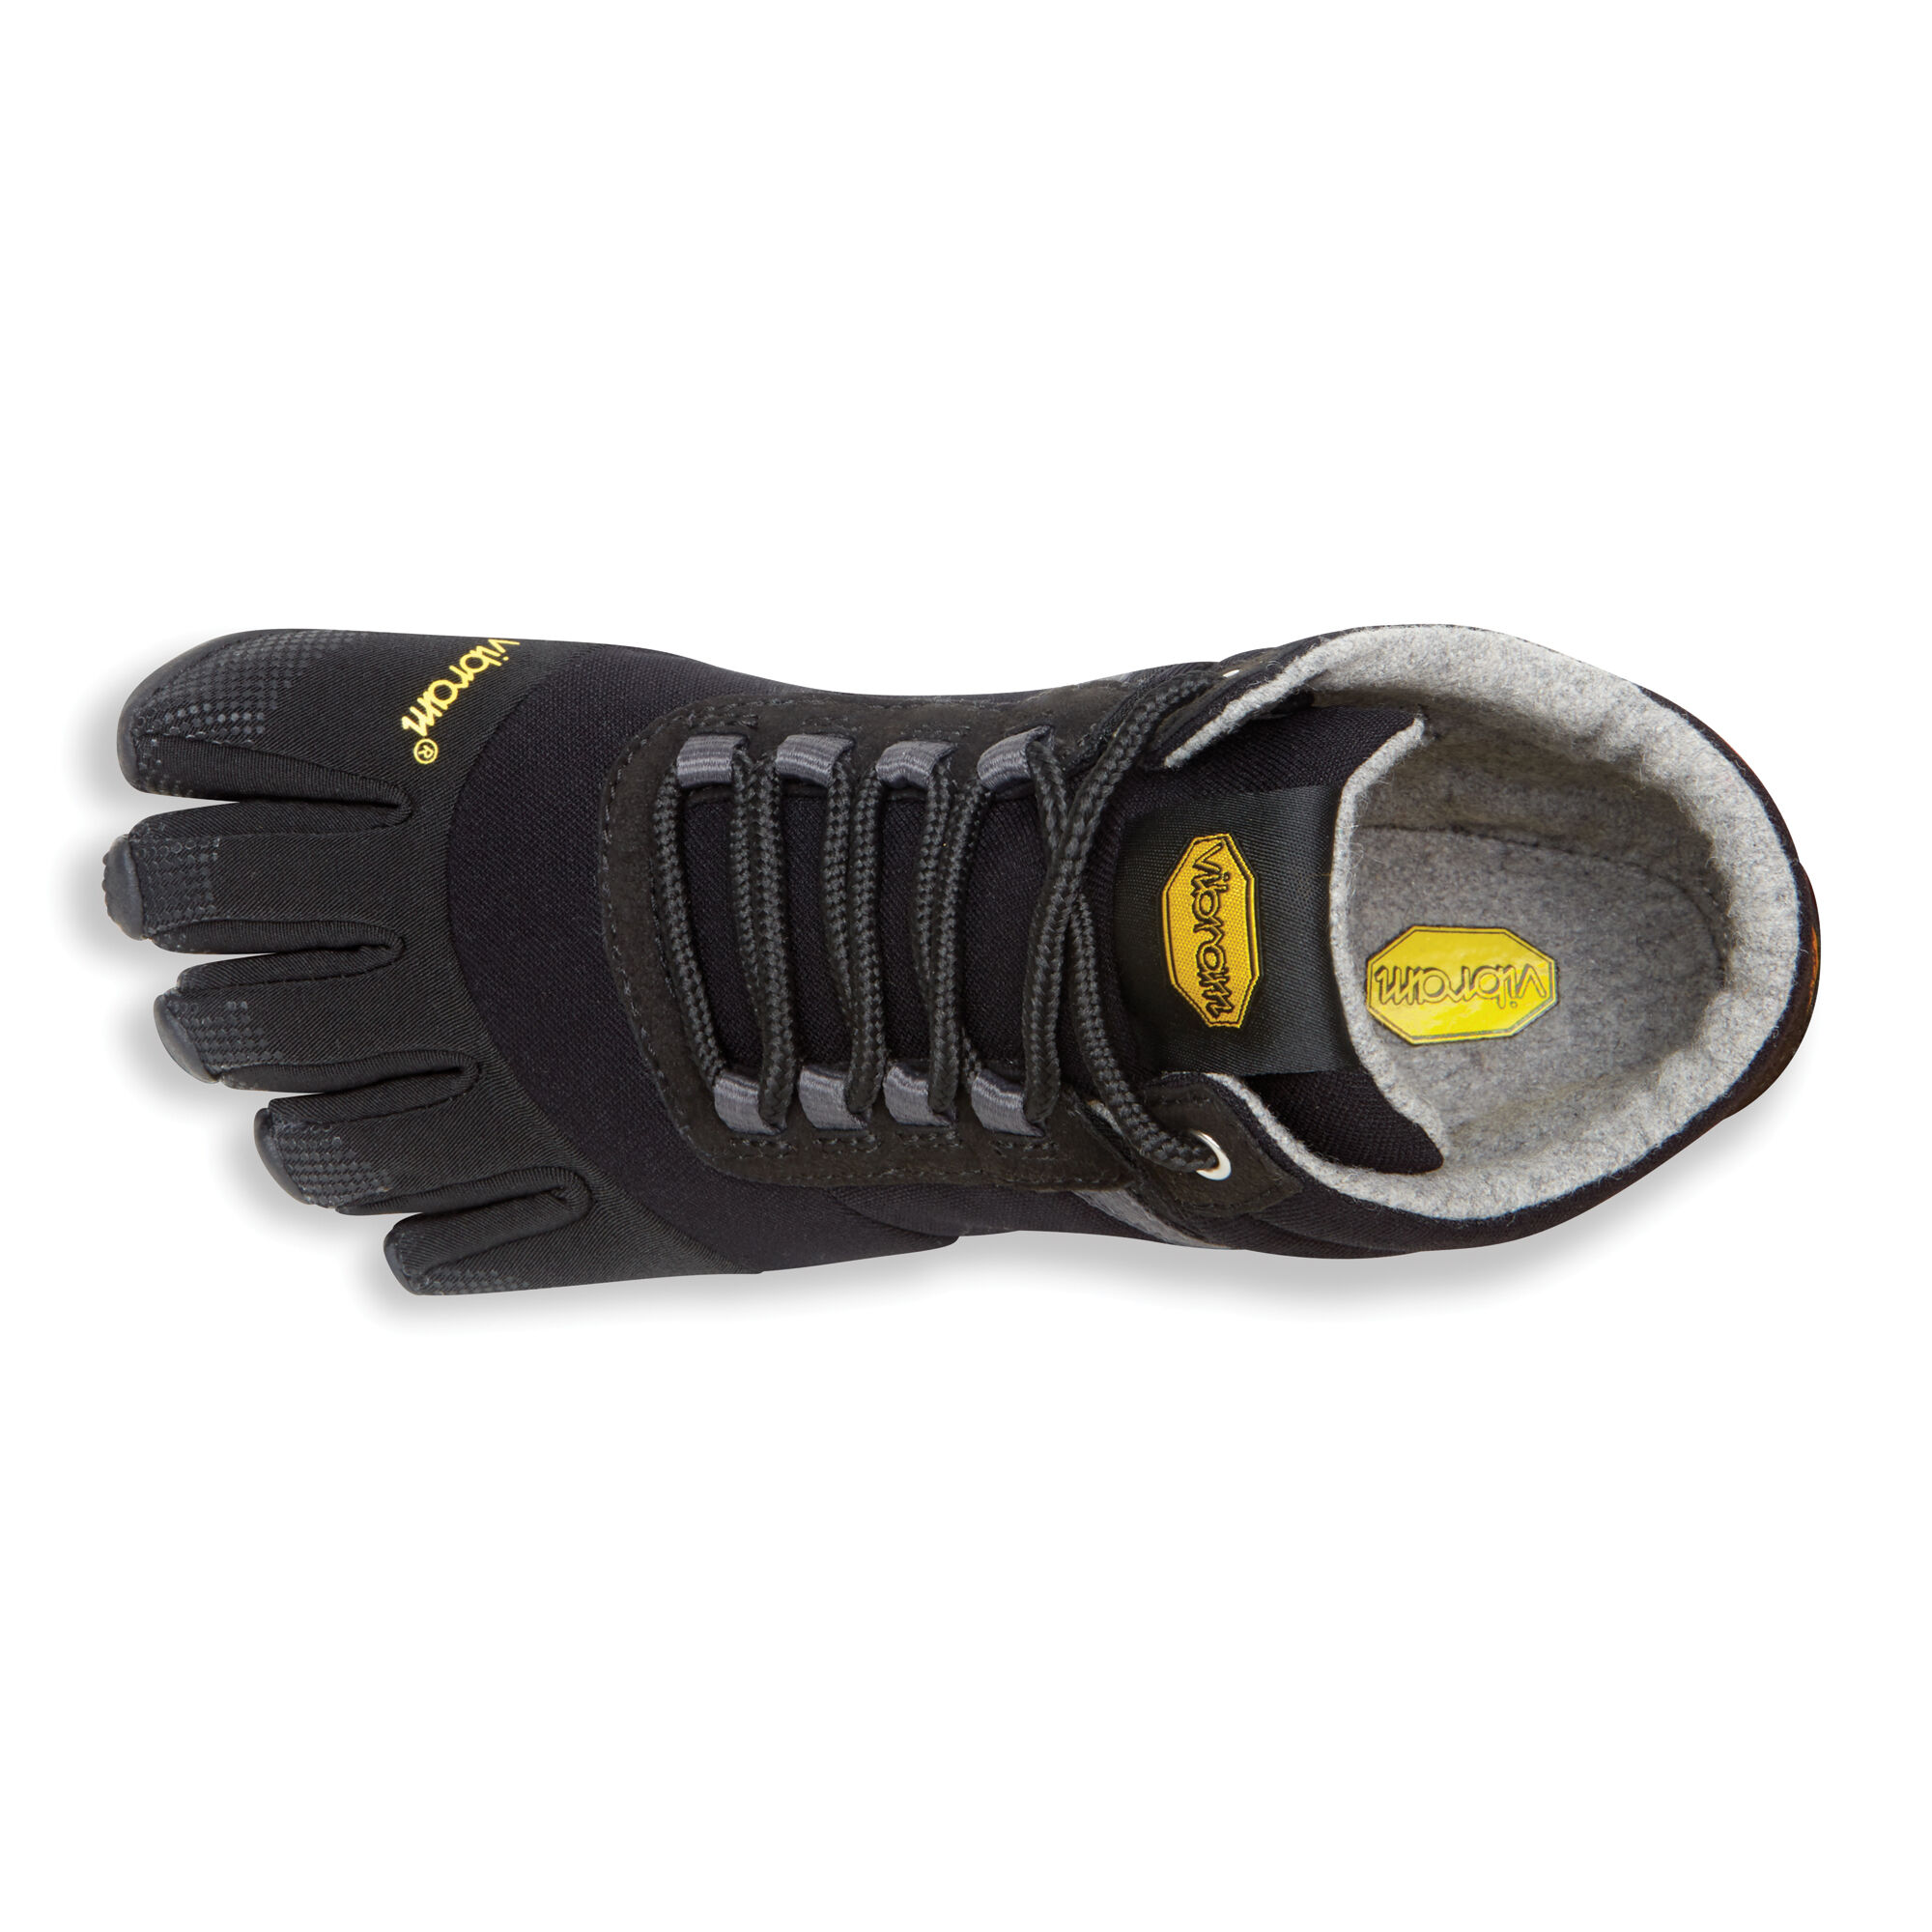 Trek Ascent Insulated | Outdoor & Trail | Men | FiveFingers